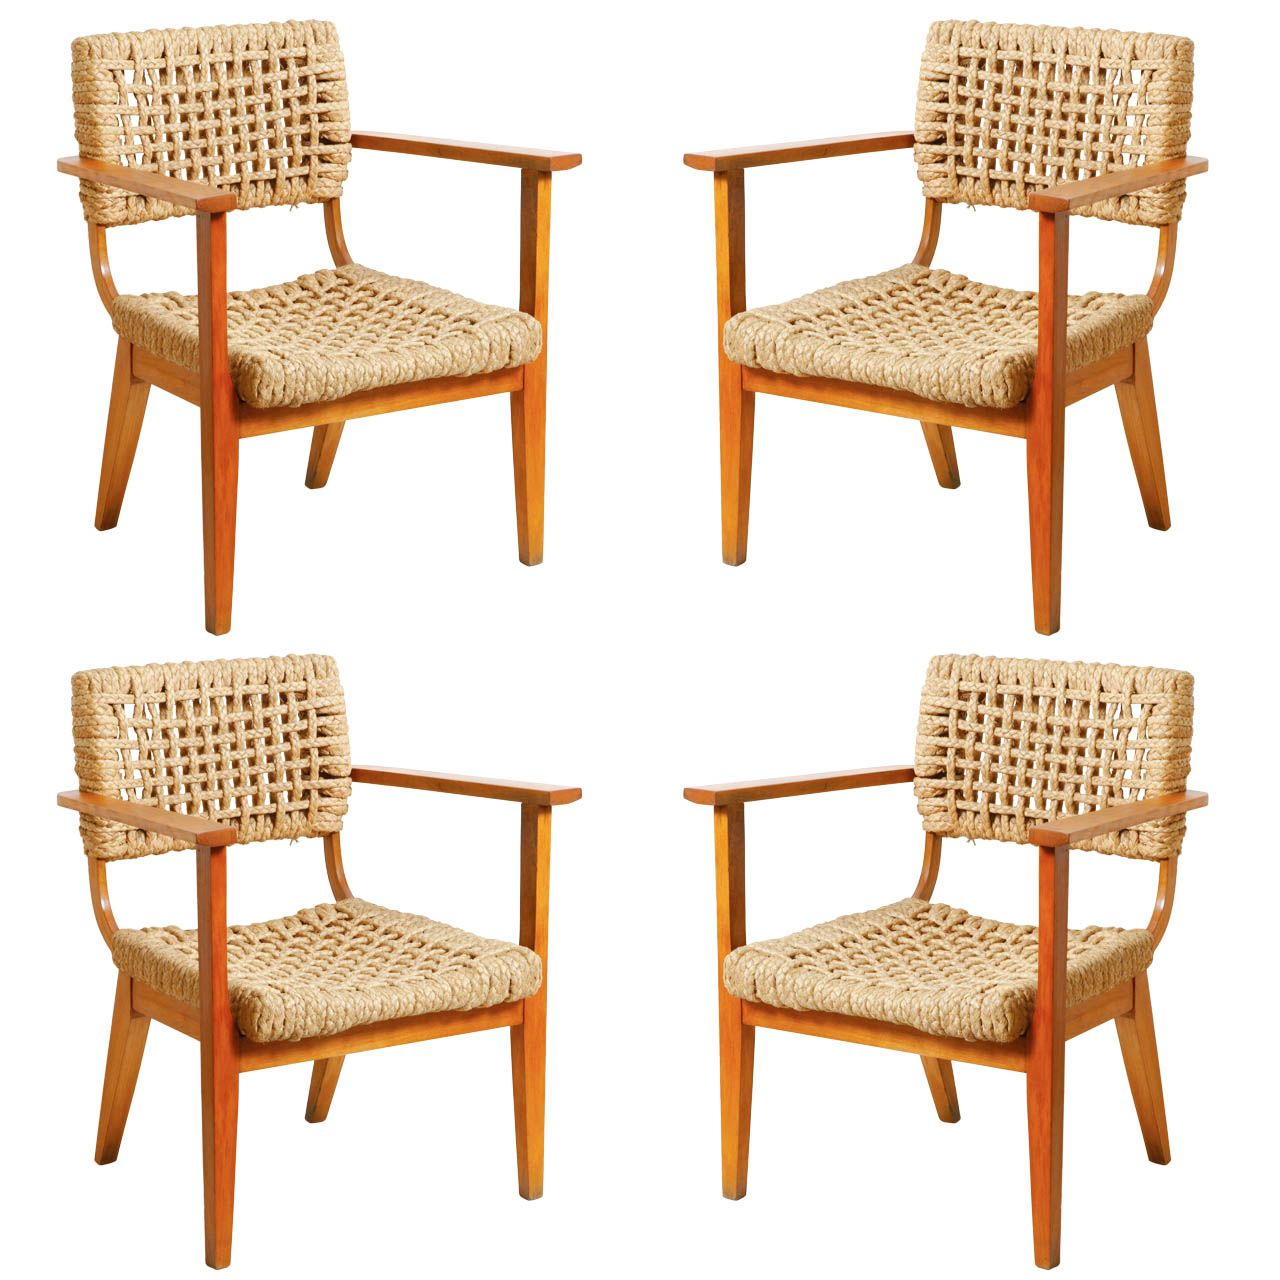 Rare Low Armchairs by Audoux-Minet | From a unique collection of antique and modern armchairs at http://www.1stdibs.com/furniture/seating/armchairs/